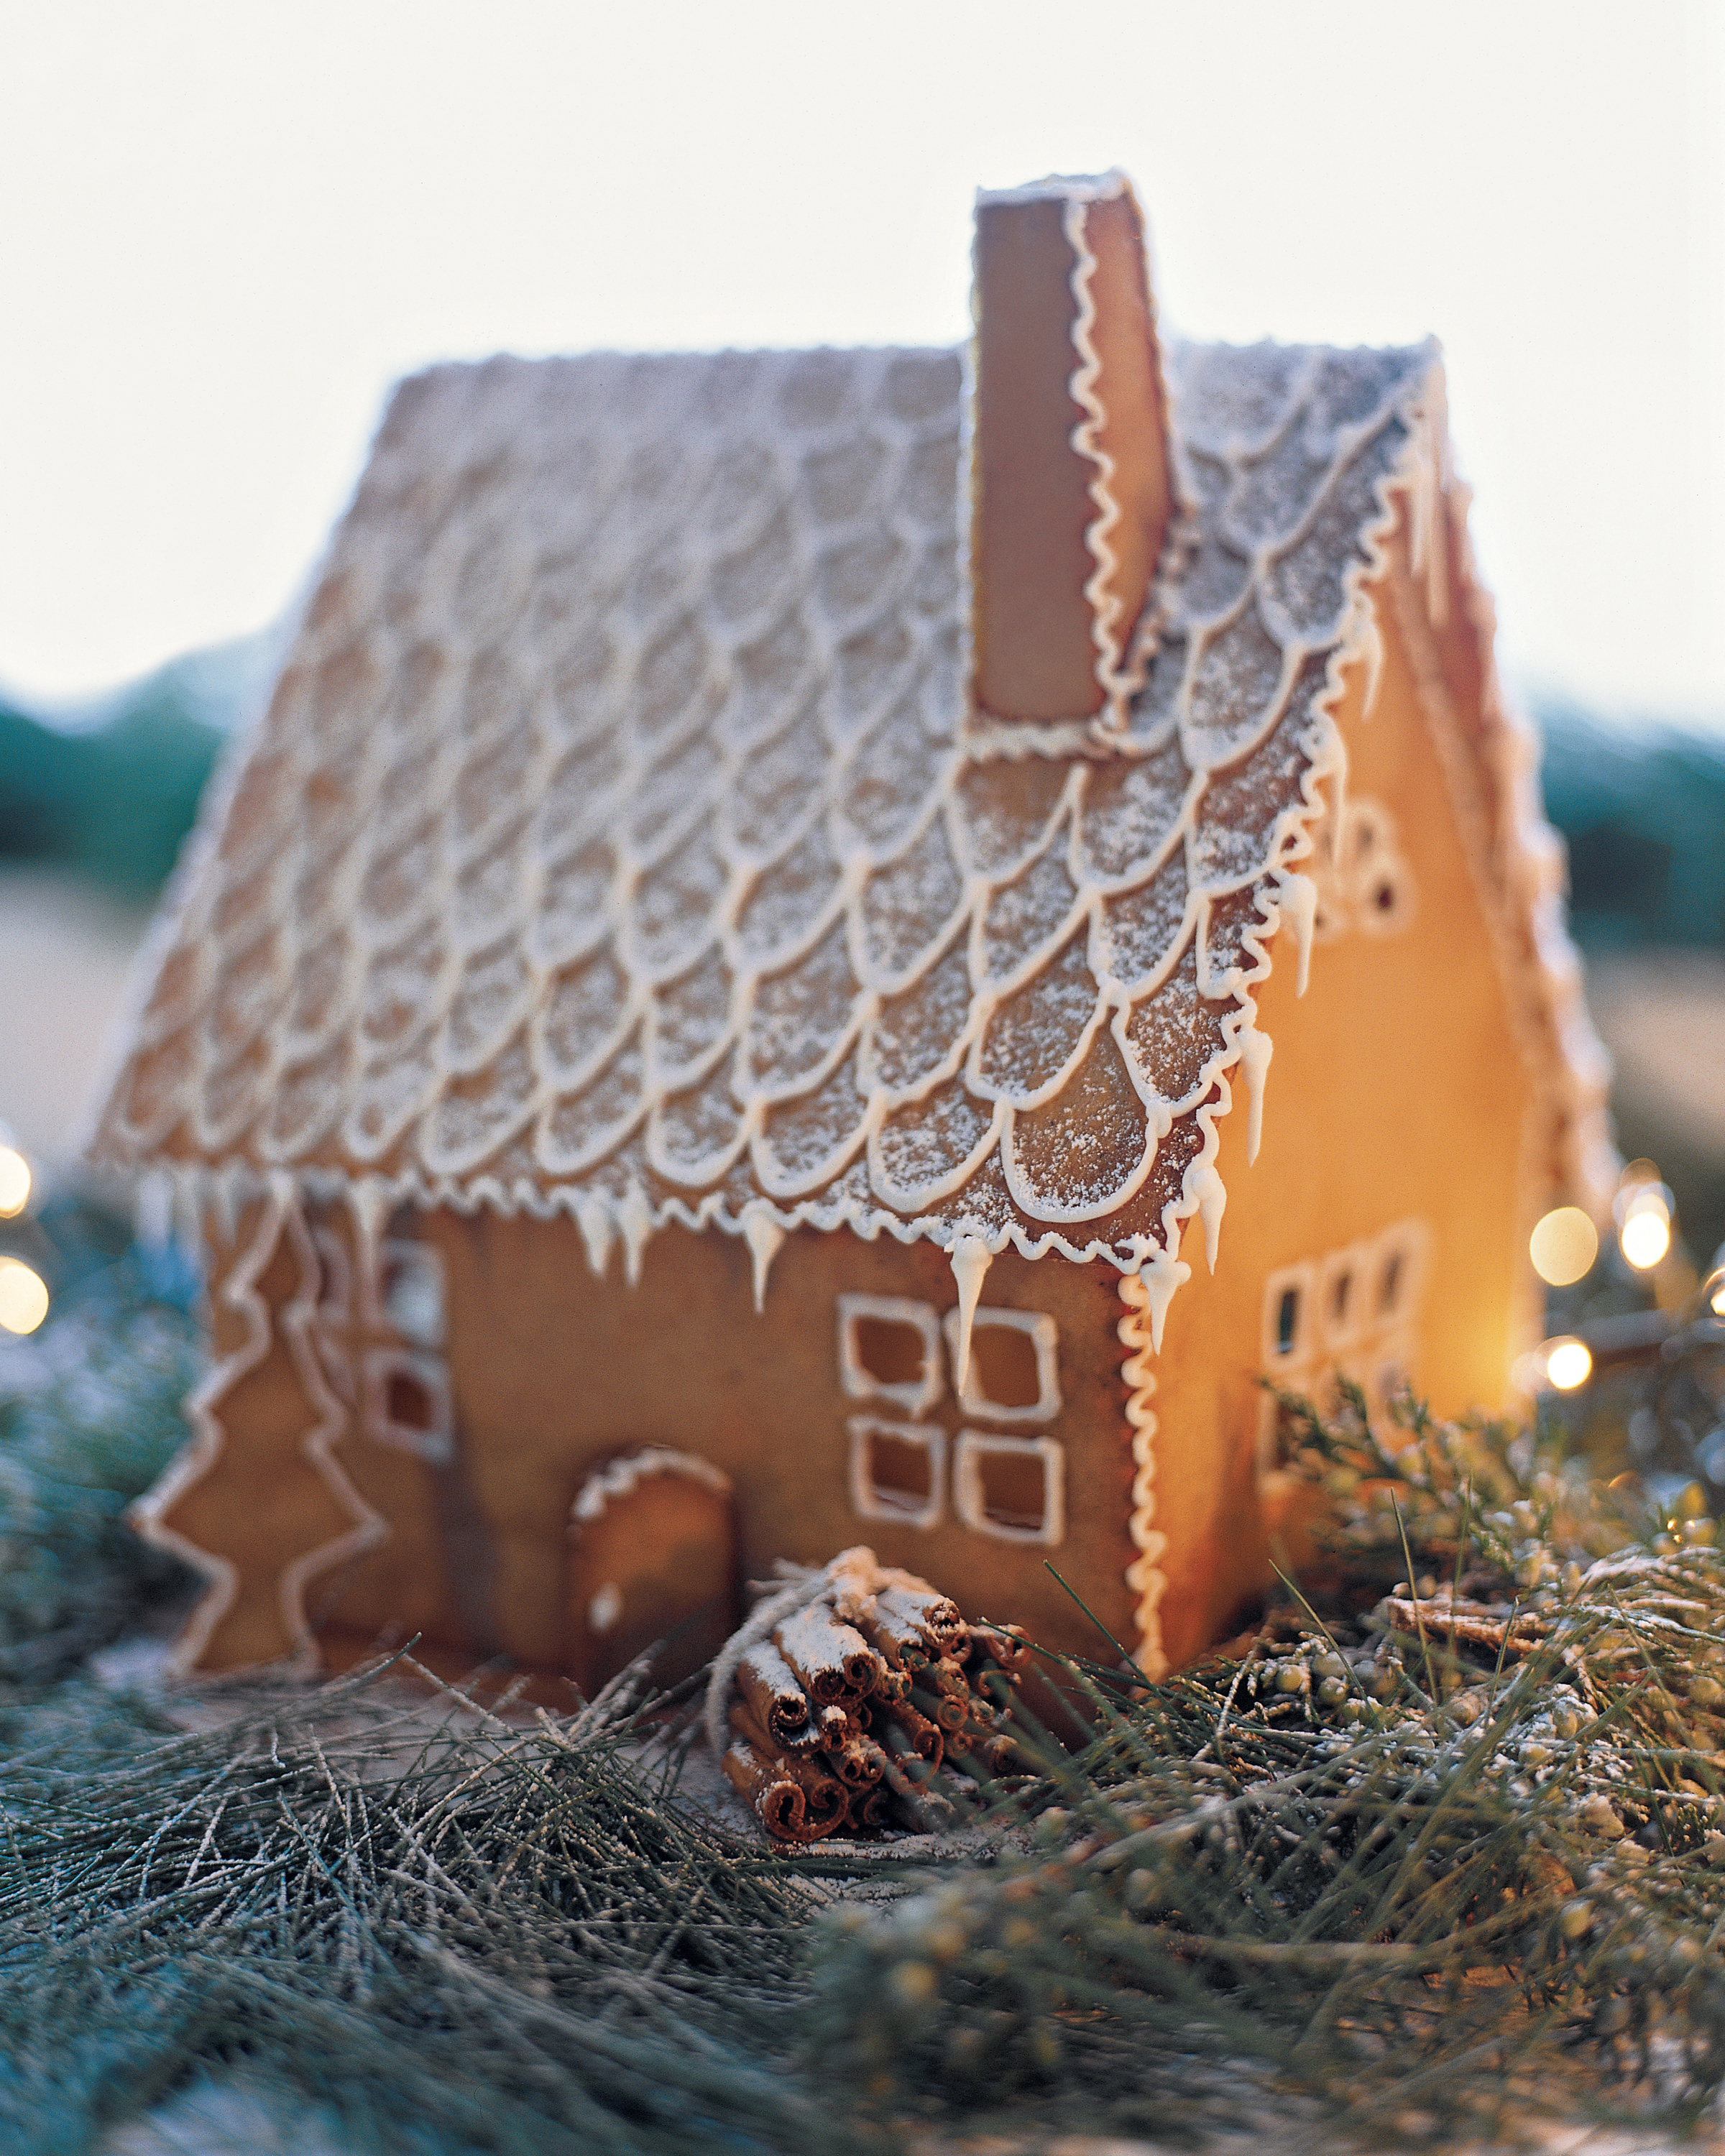 Swedish Gingerbread House How-To